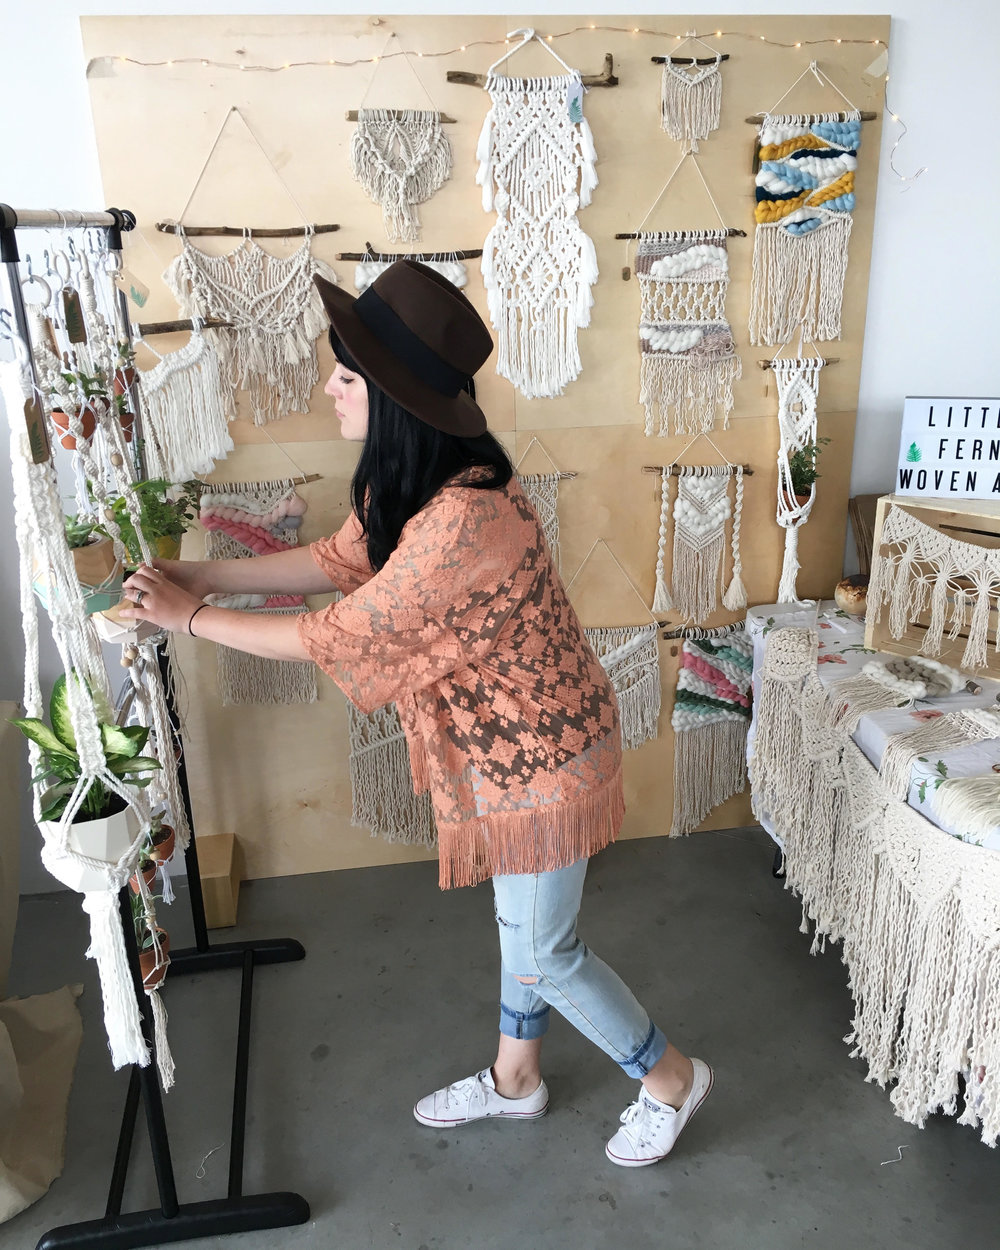 Fern Weft - We are so excited to have Tawnee of Fern Weft BACK with us to do a DIY Macrame Workshop on our main stage! Spaces is VERY limited (and the class is FREE) so be sure to get here early so you don't miss out! You'll be going home with your very own macrame art piece and a whole lot more weaving knowledge!